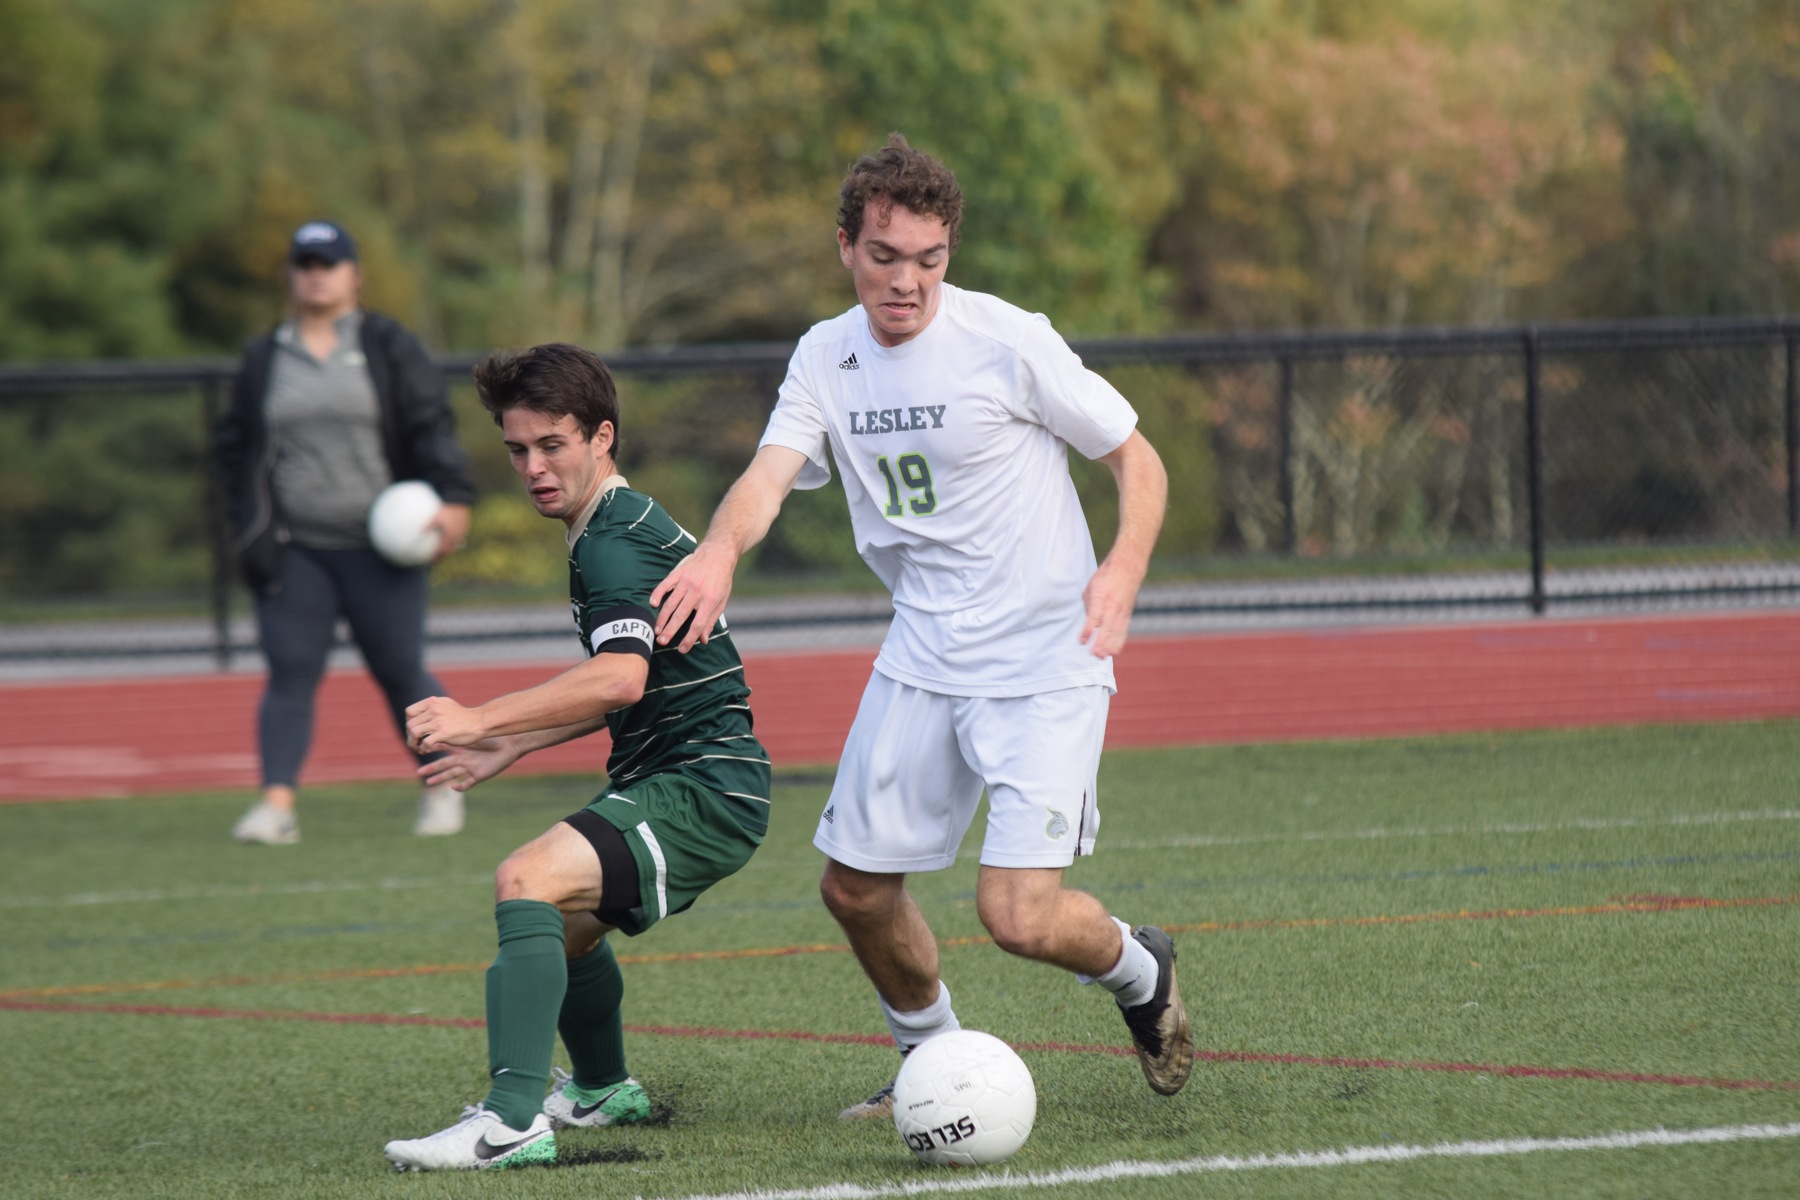 Babson Strikes Late in 2nd Half to Defeat Lynx, 1-0